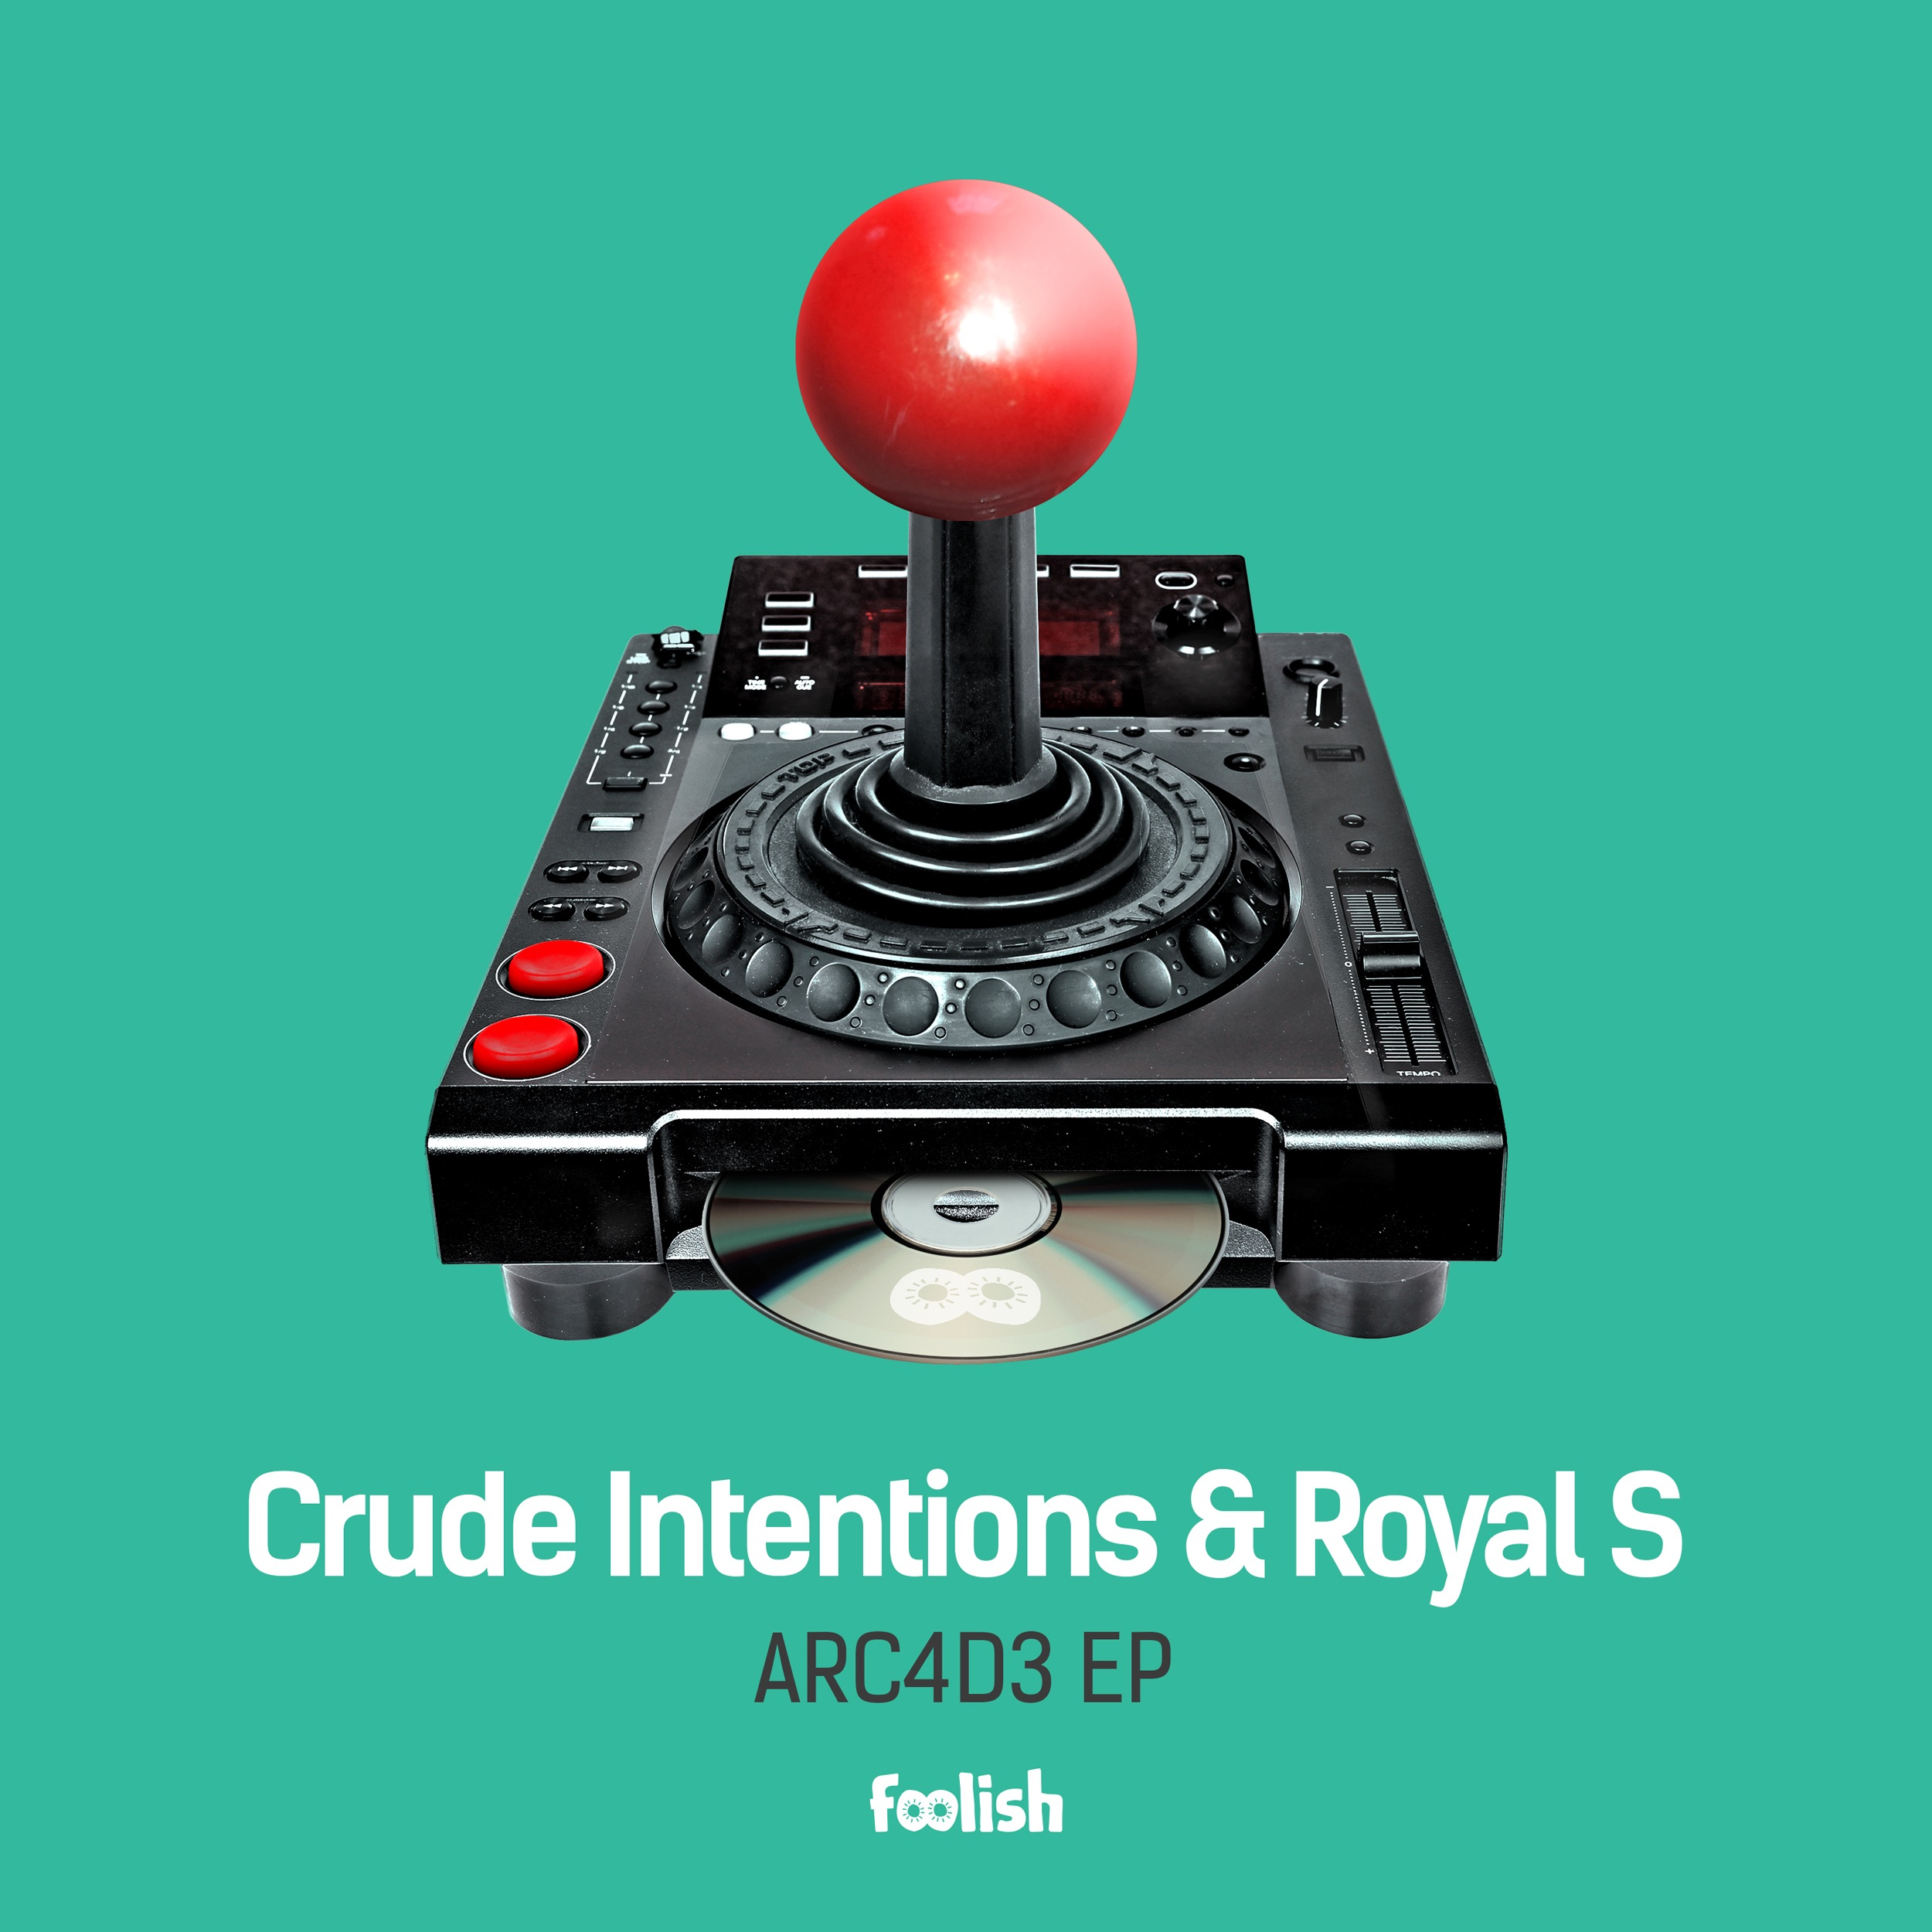 Crude Intentions & Royal S - ARC4D3 EP [FOOLISH] FLSM031